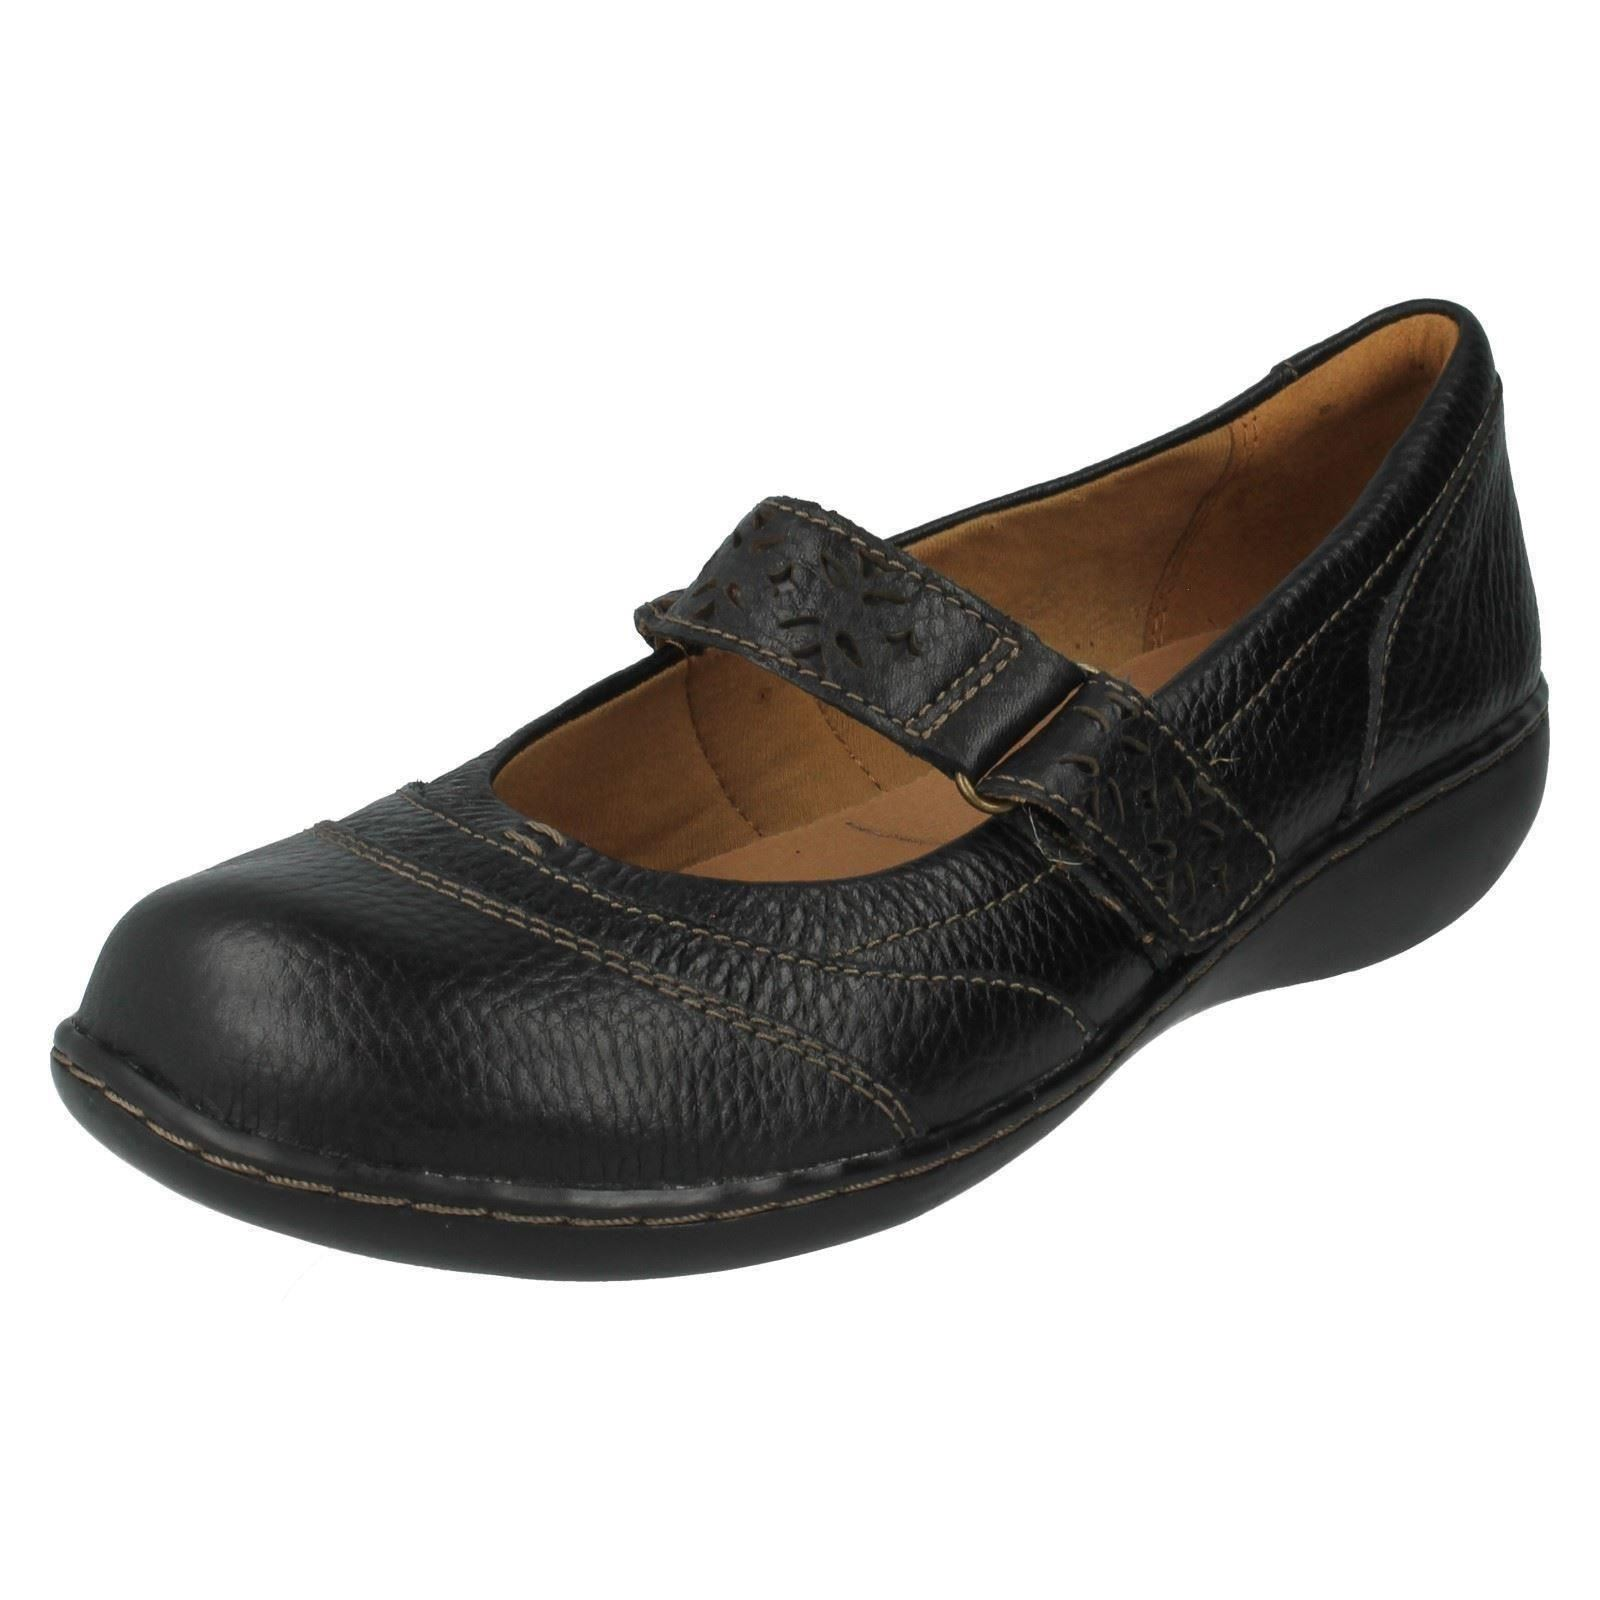 Clarks Shoes Mary Jane Style